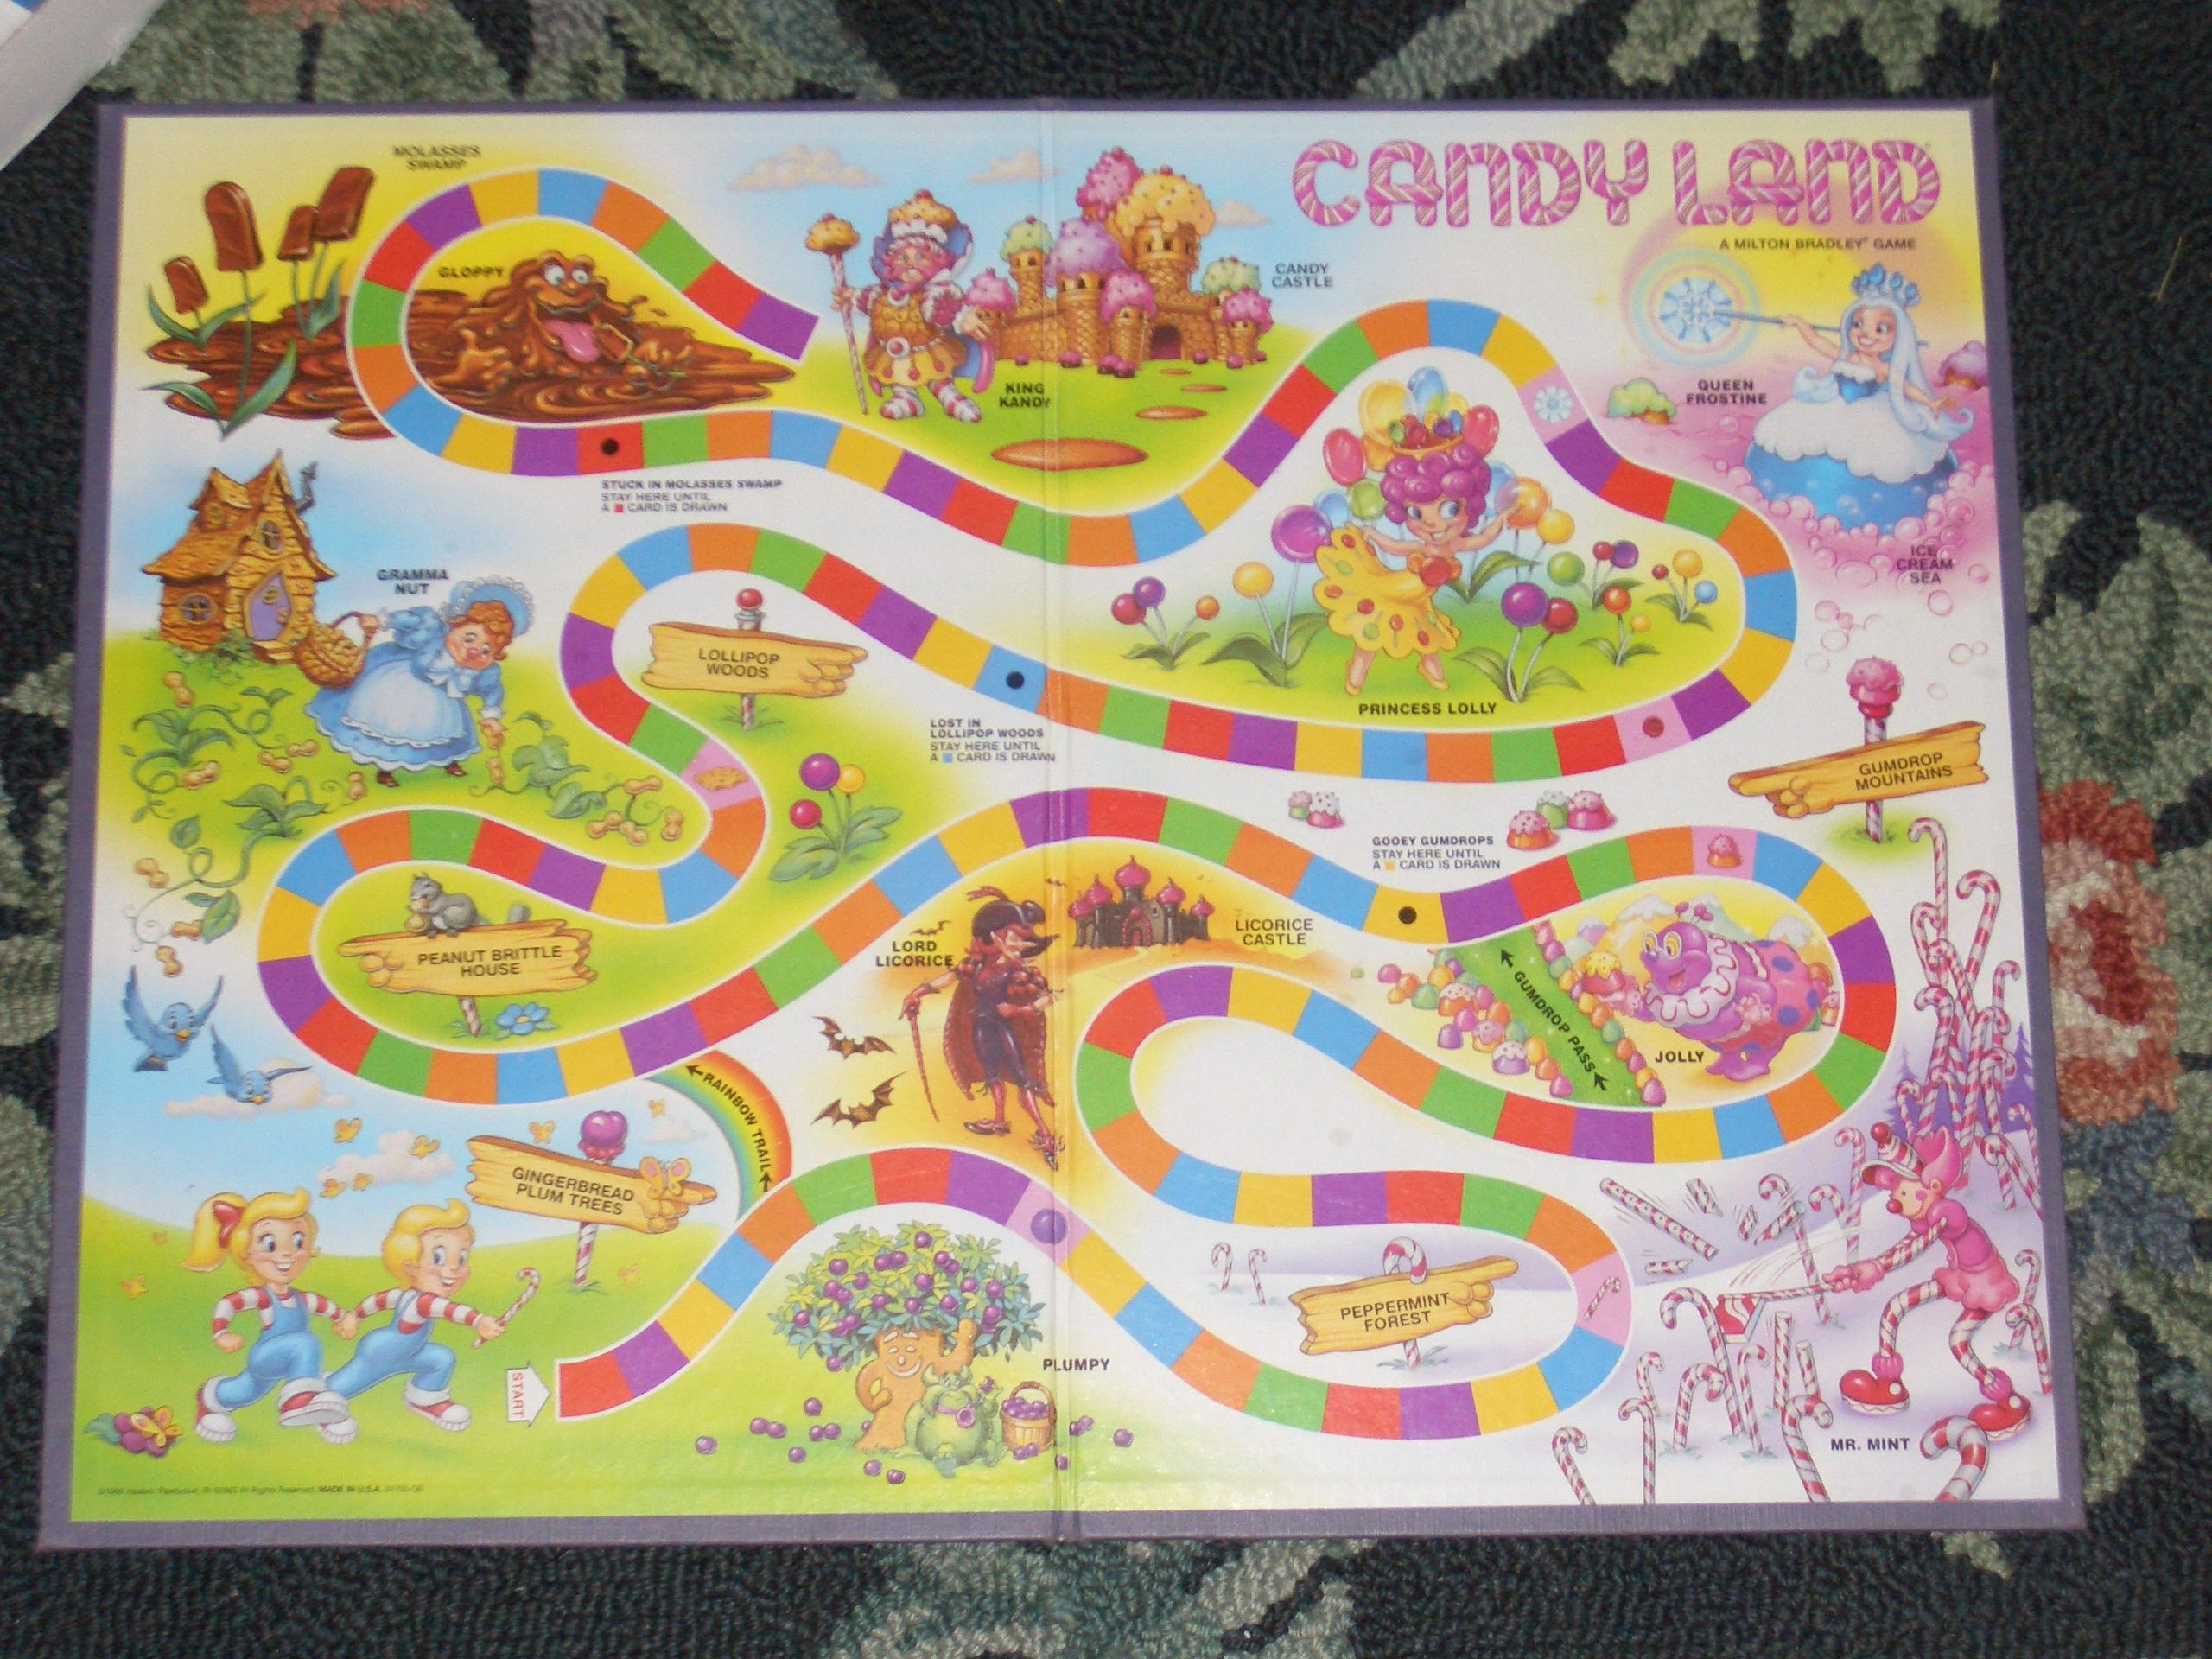 Candyland to be like LOTR?